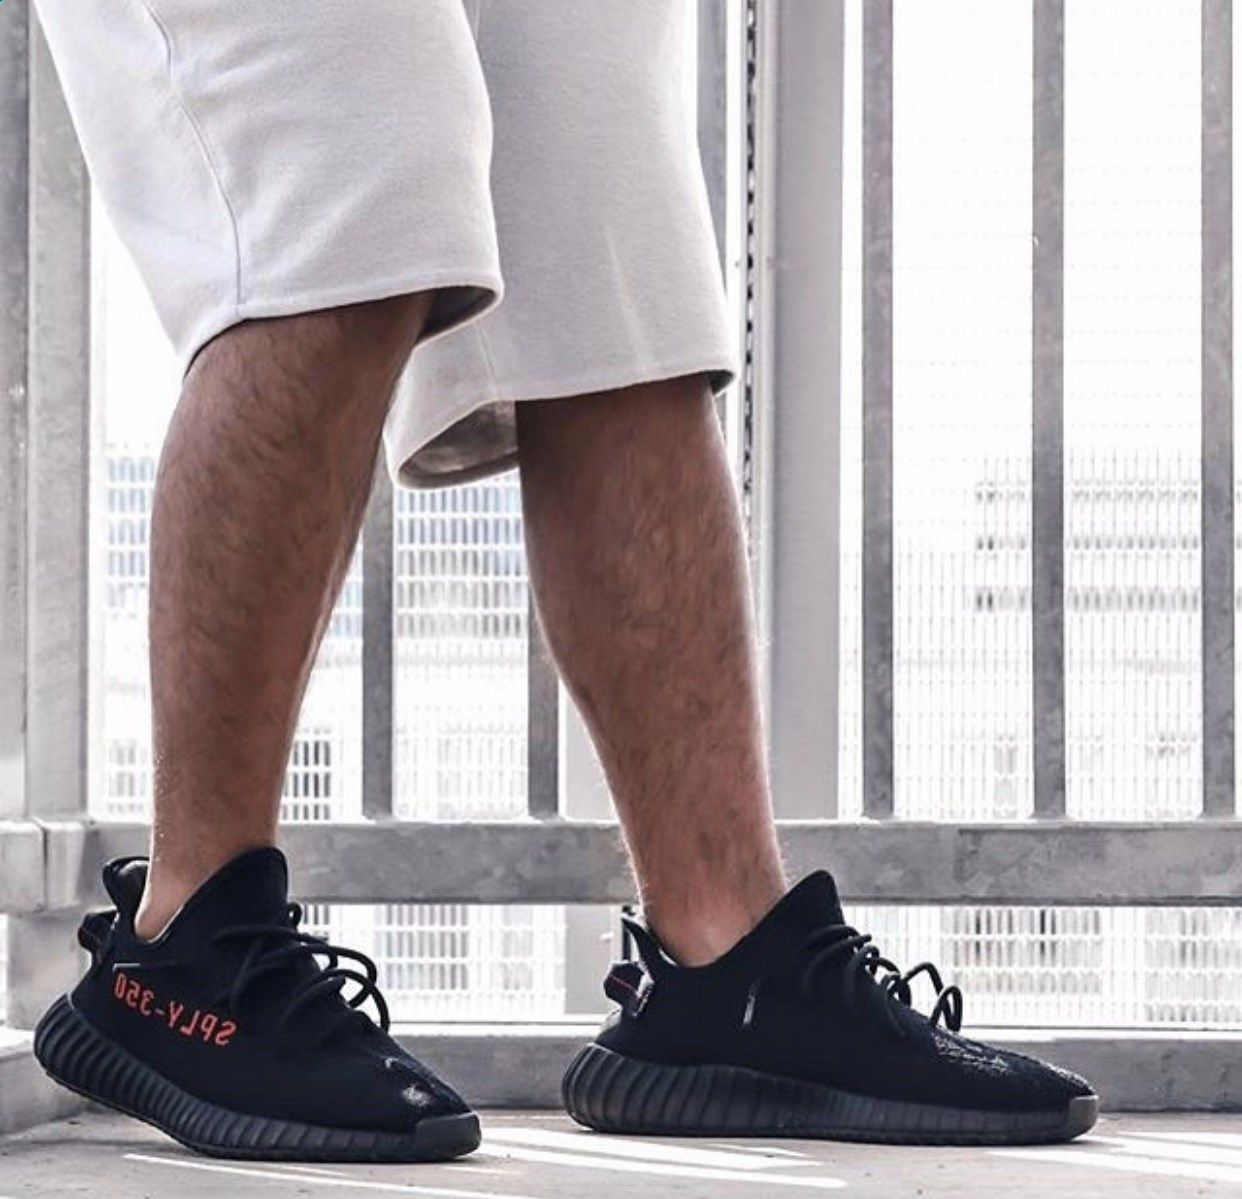 Yeezy Boosts with shorts. Adidas Yeezy Boost 350 V2 Bred